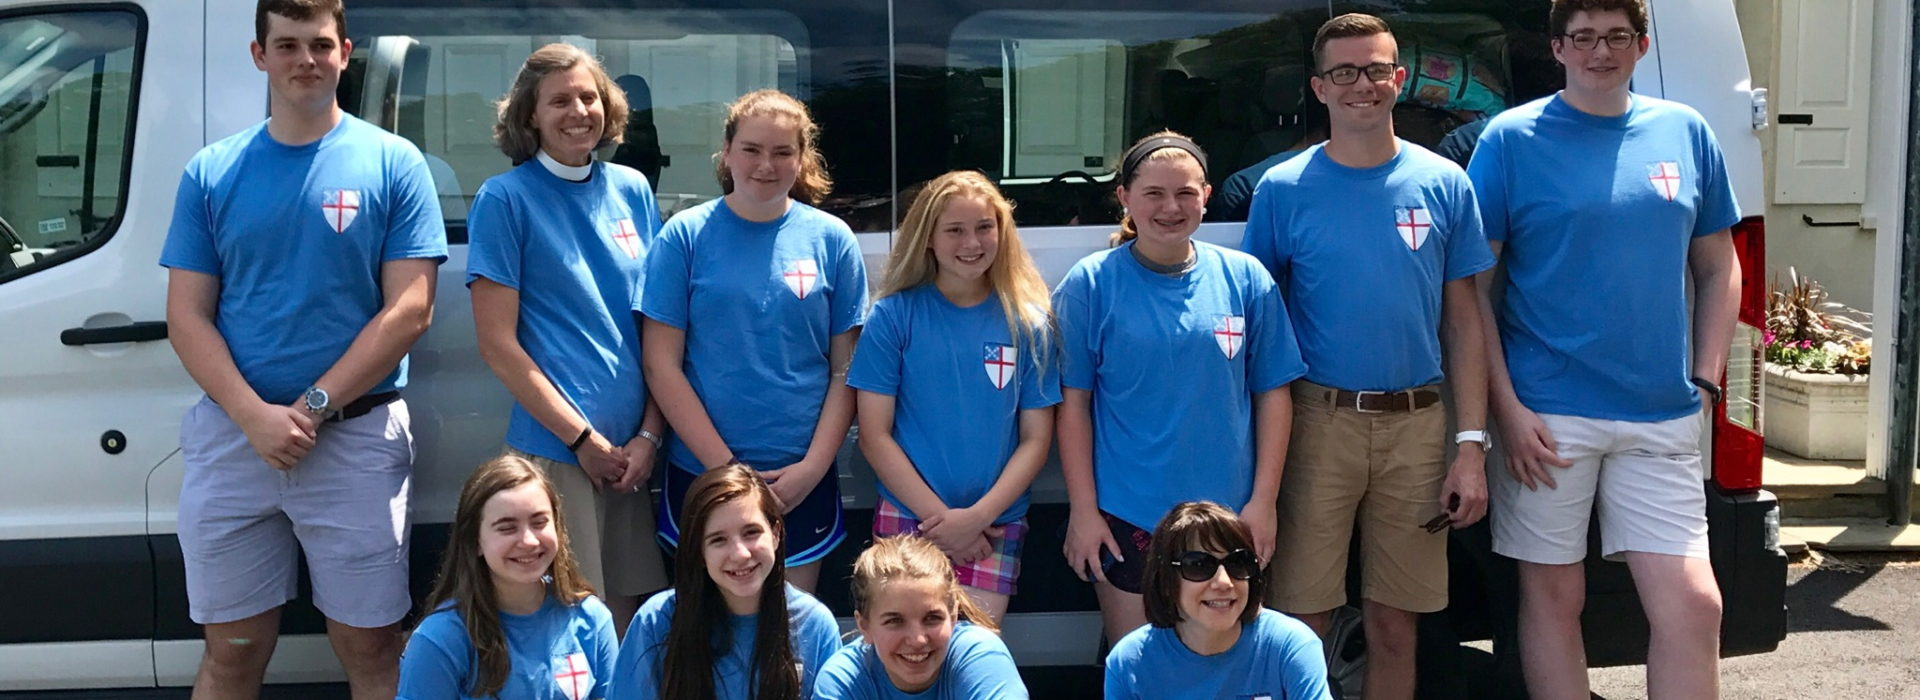 Youth before leaving for mission trip